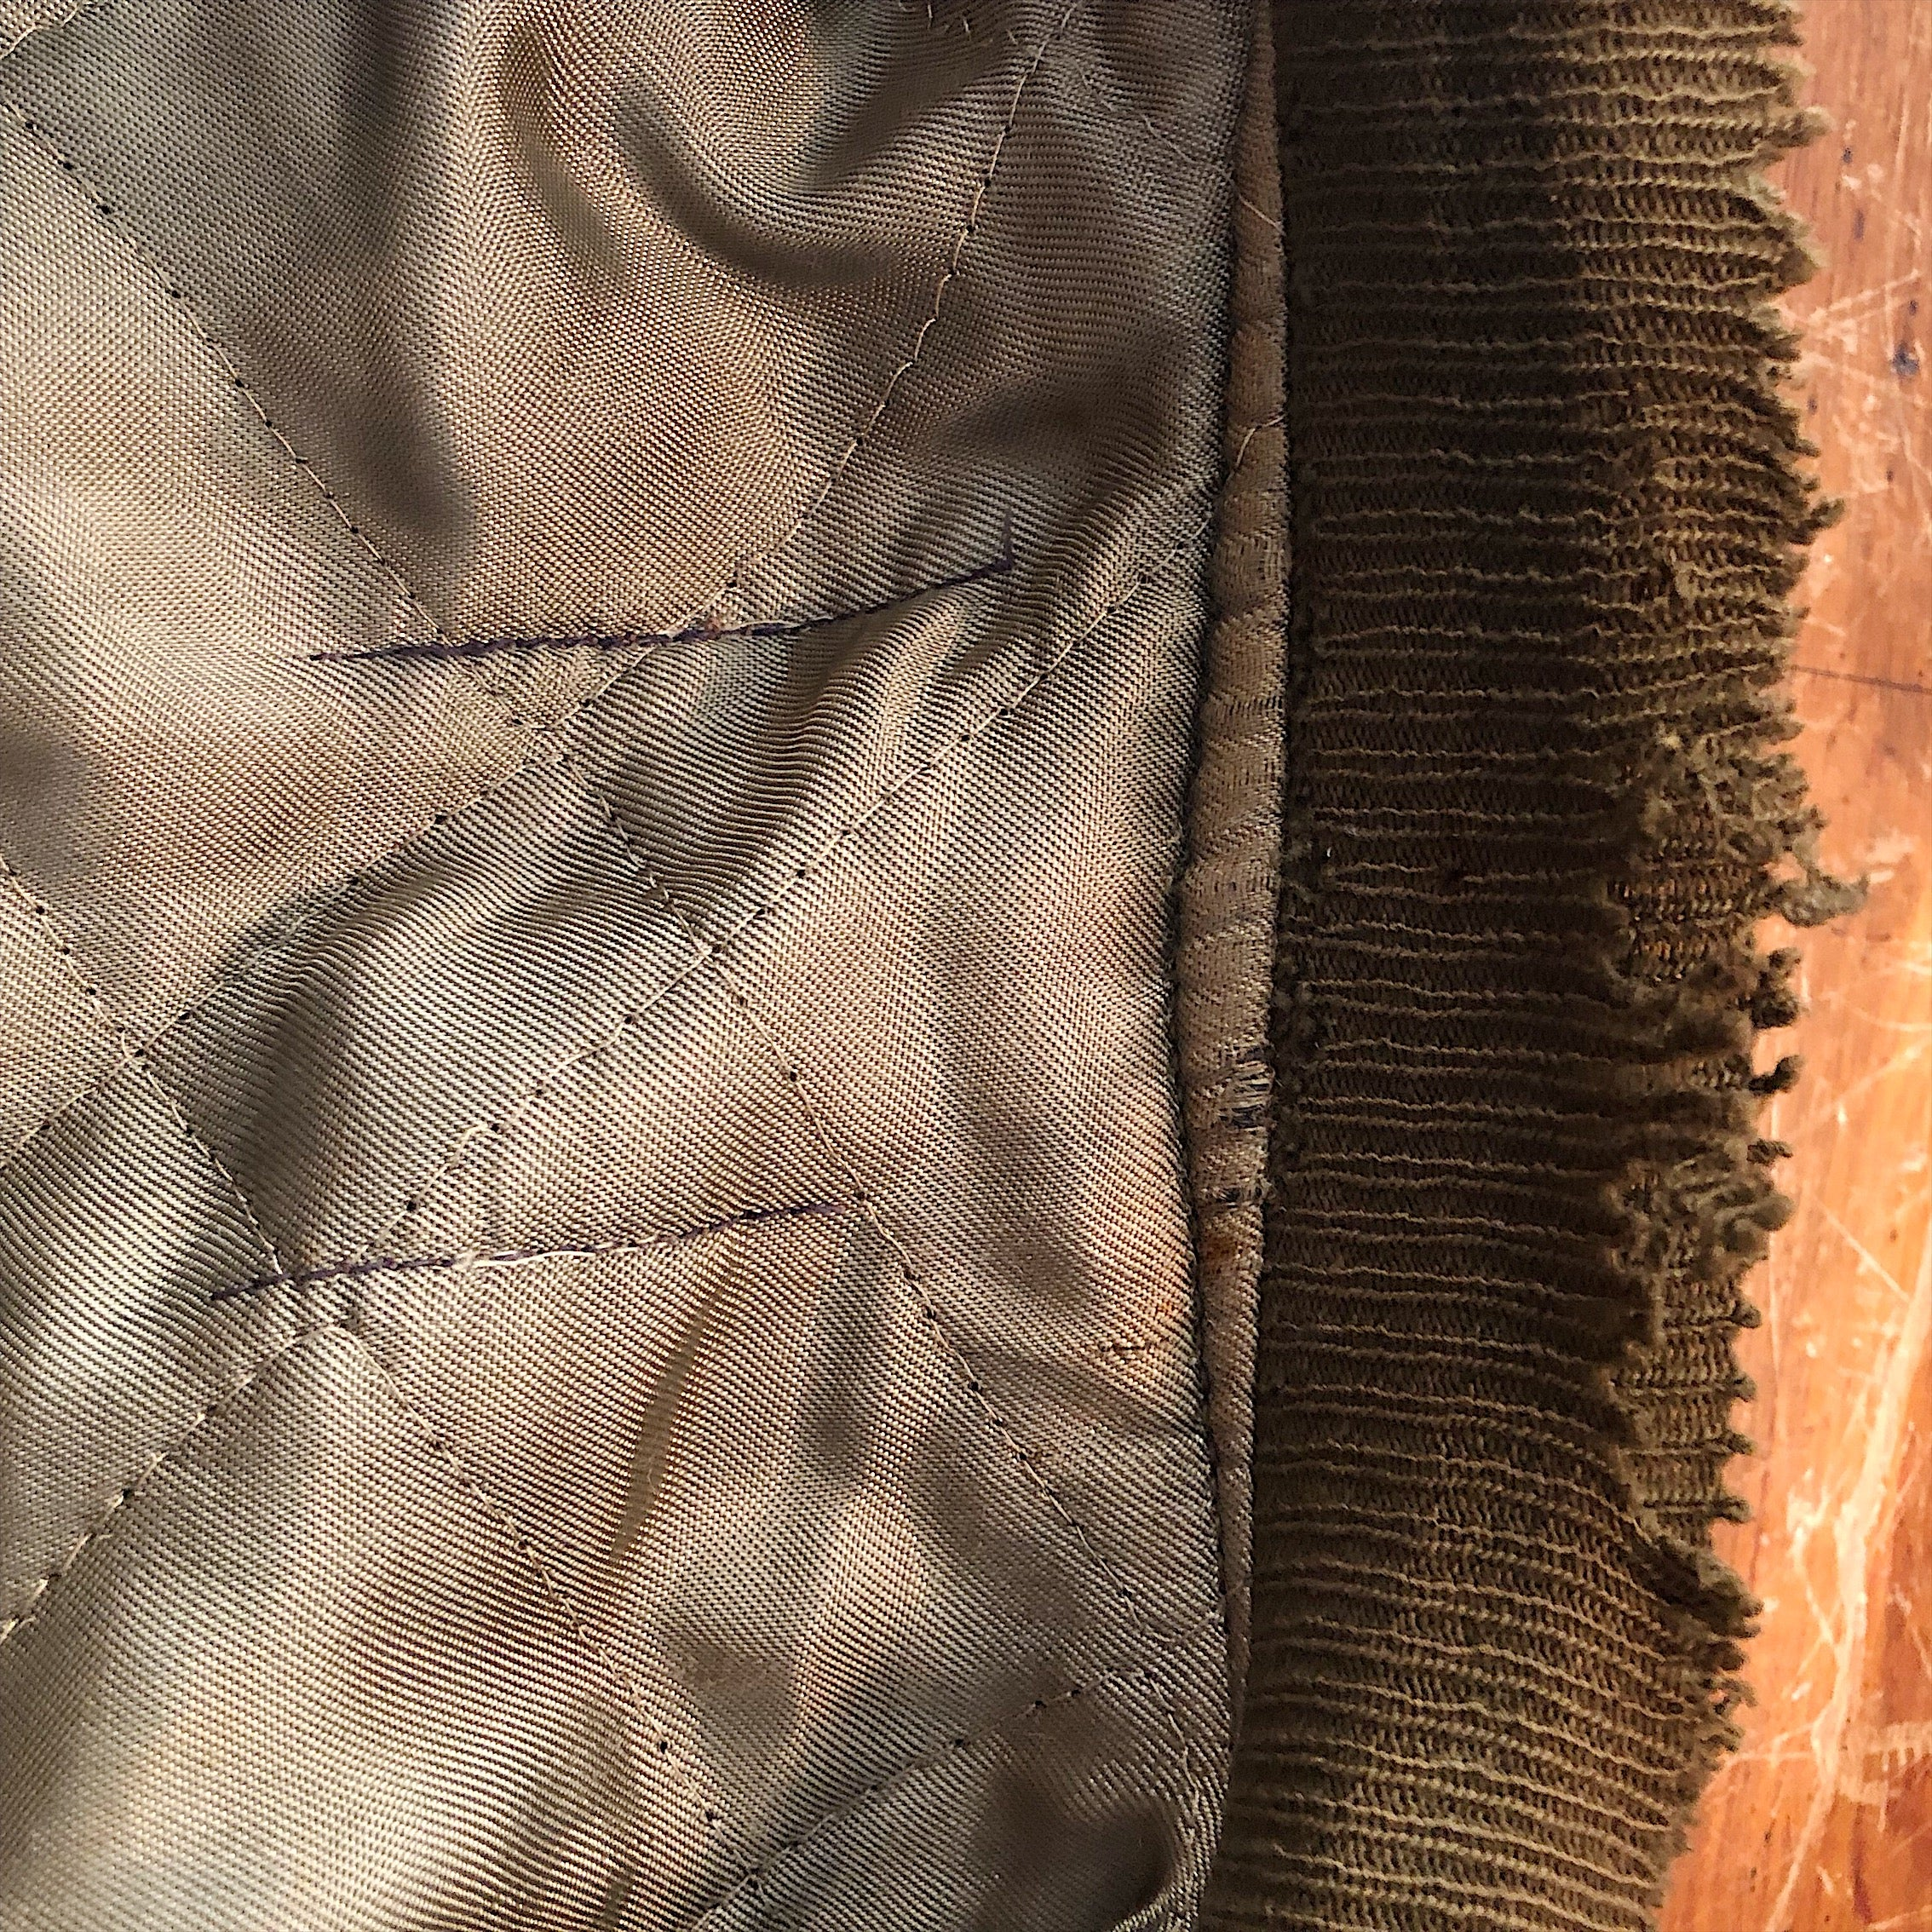 Waist band fraying  on Authentic WW2 Tanker Jacket